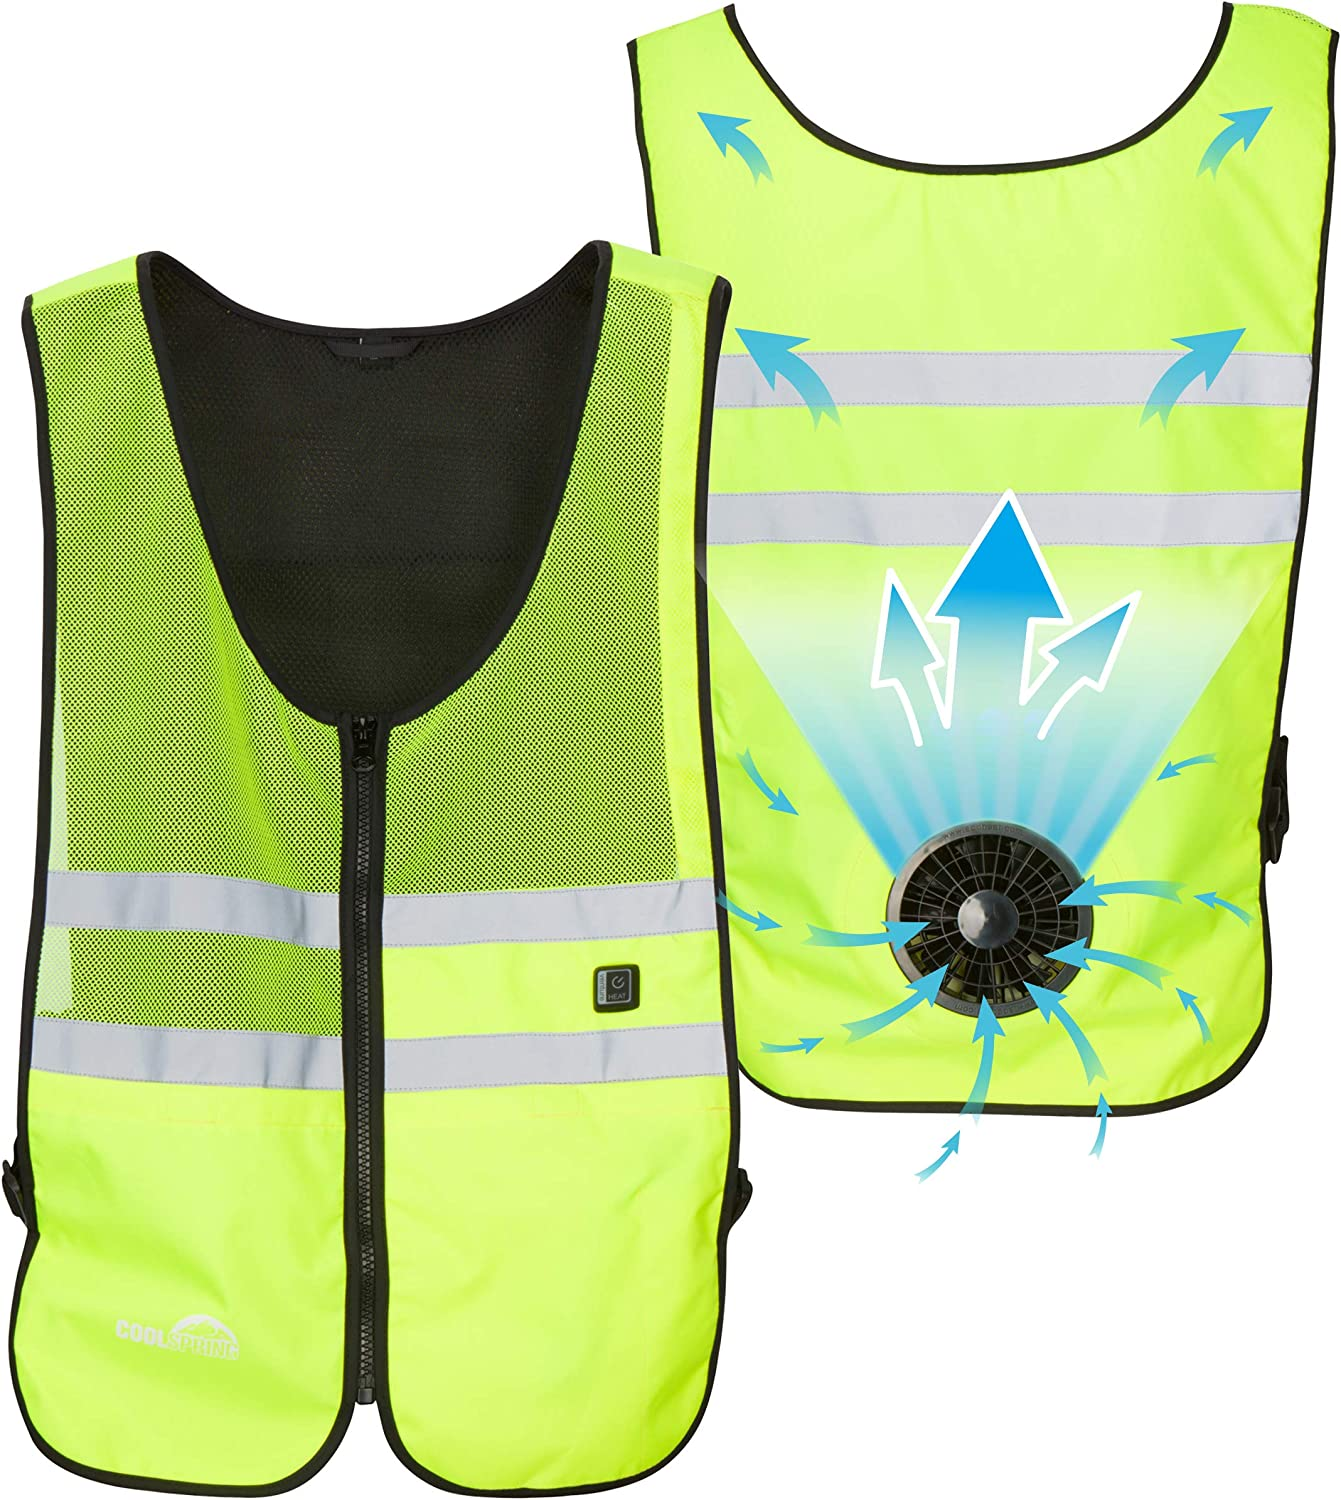 Venture Heat Wearable Fan Vest 3 Ranking TOP8 Control Air National products Circulatio Speed -